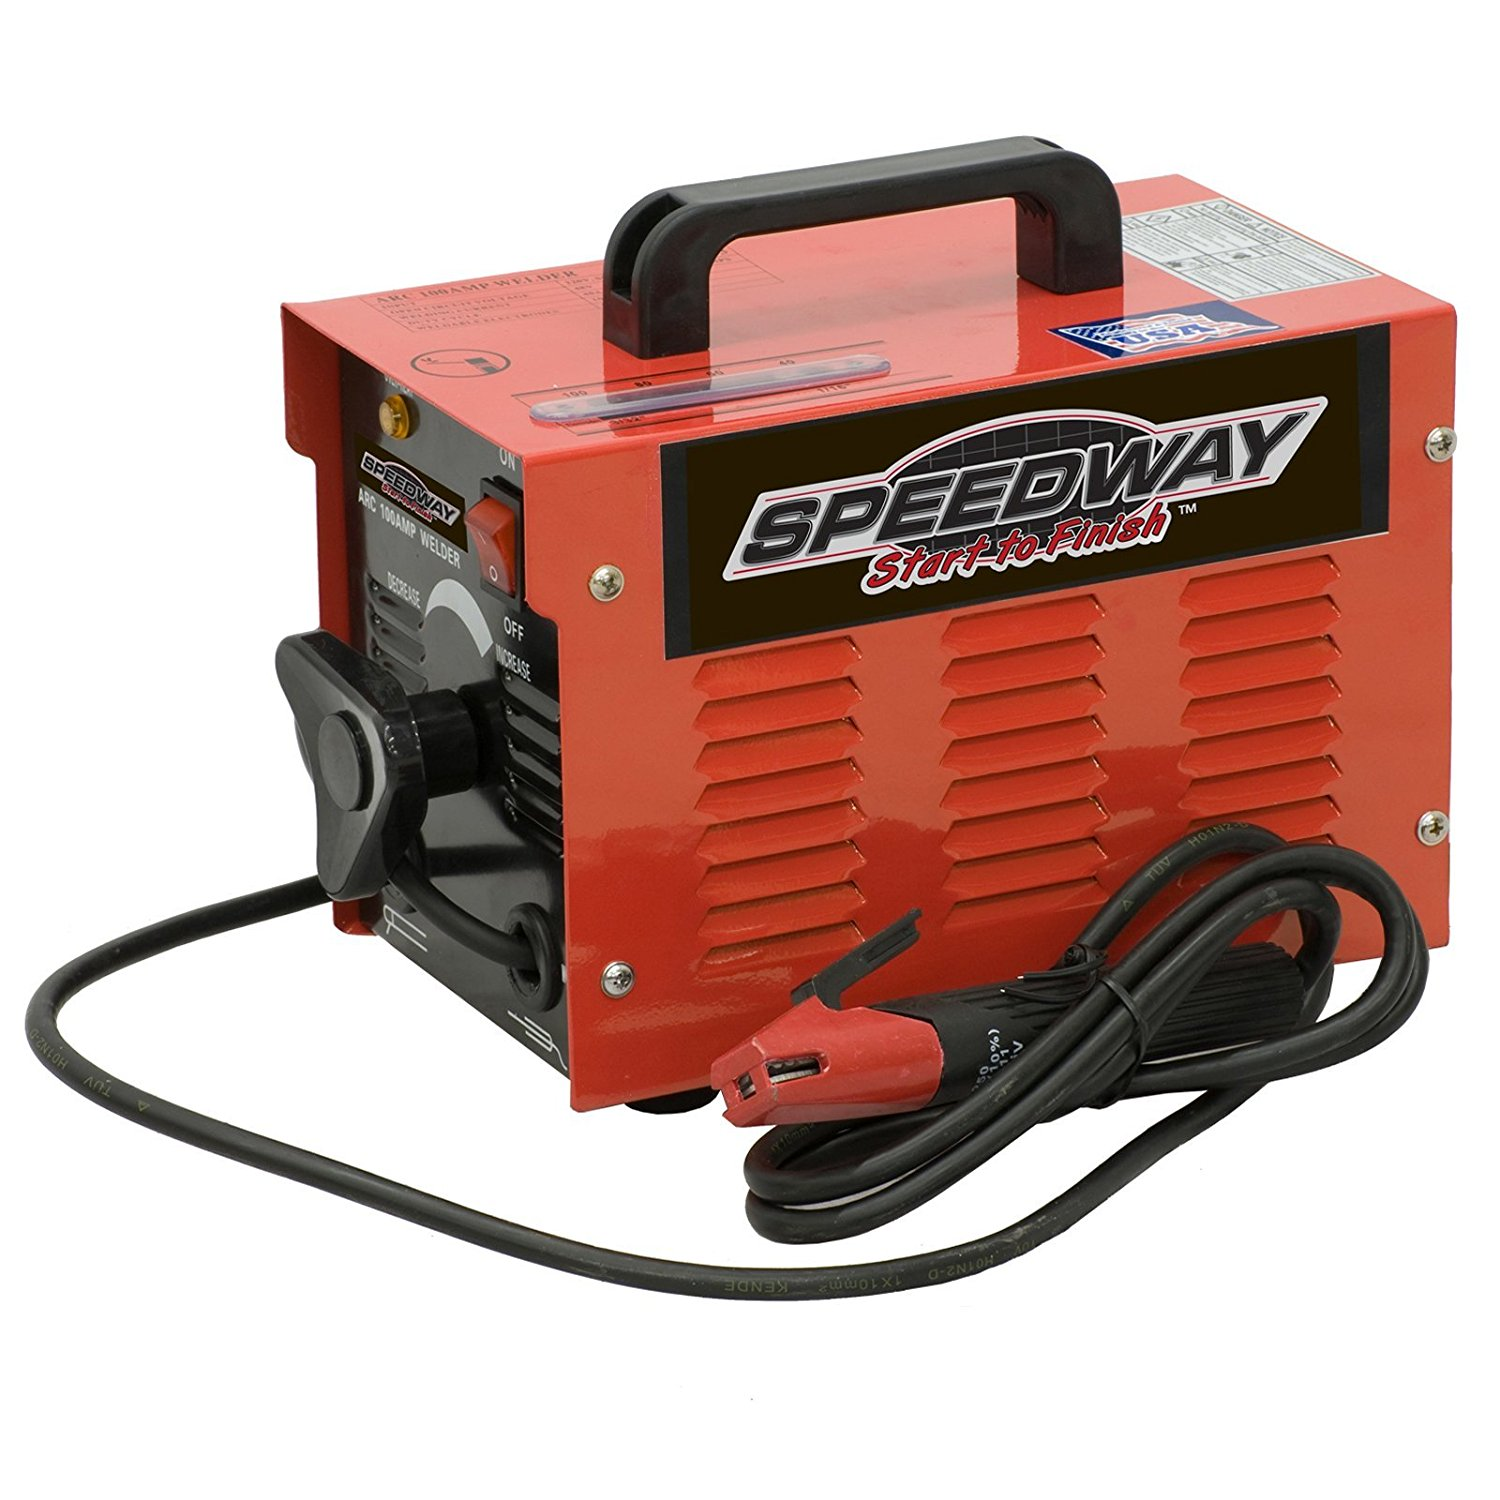 Speedway 7644 230V Single Phase Arc Welder